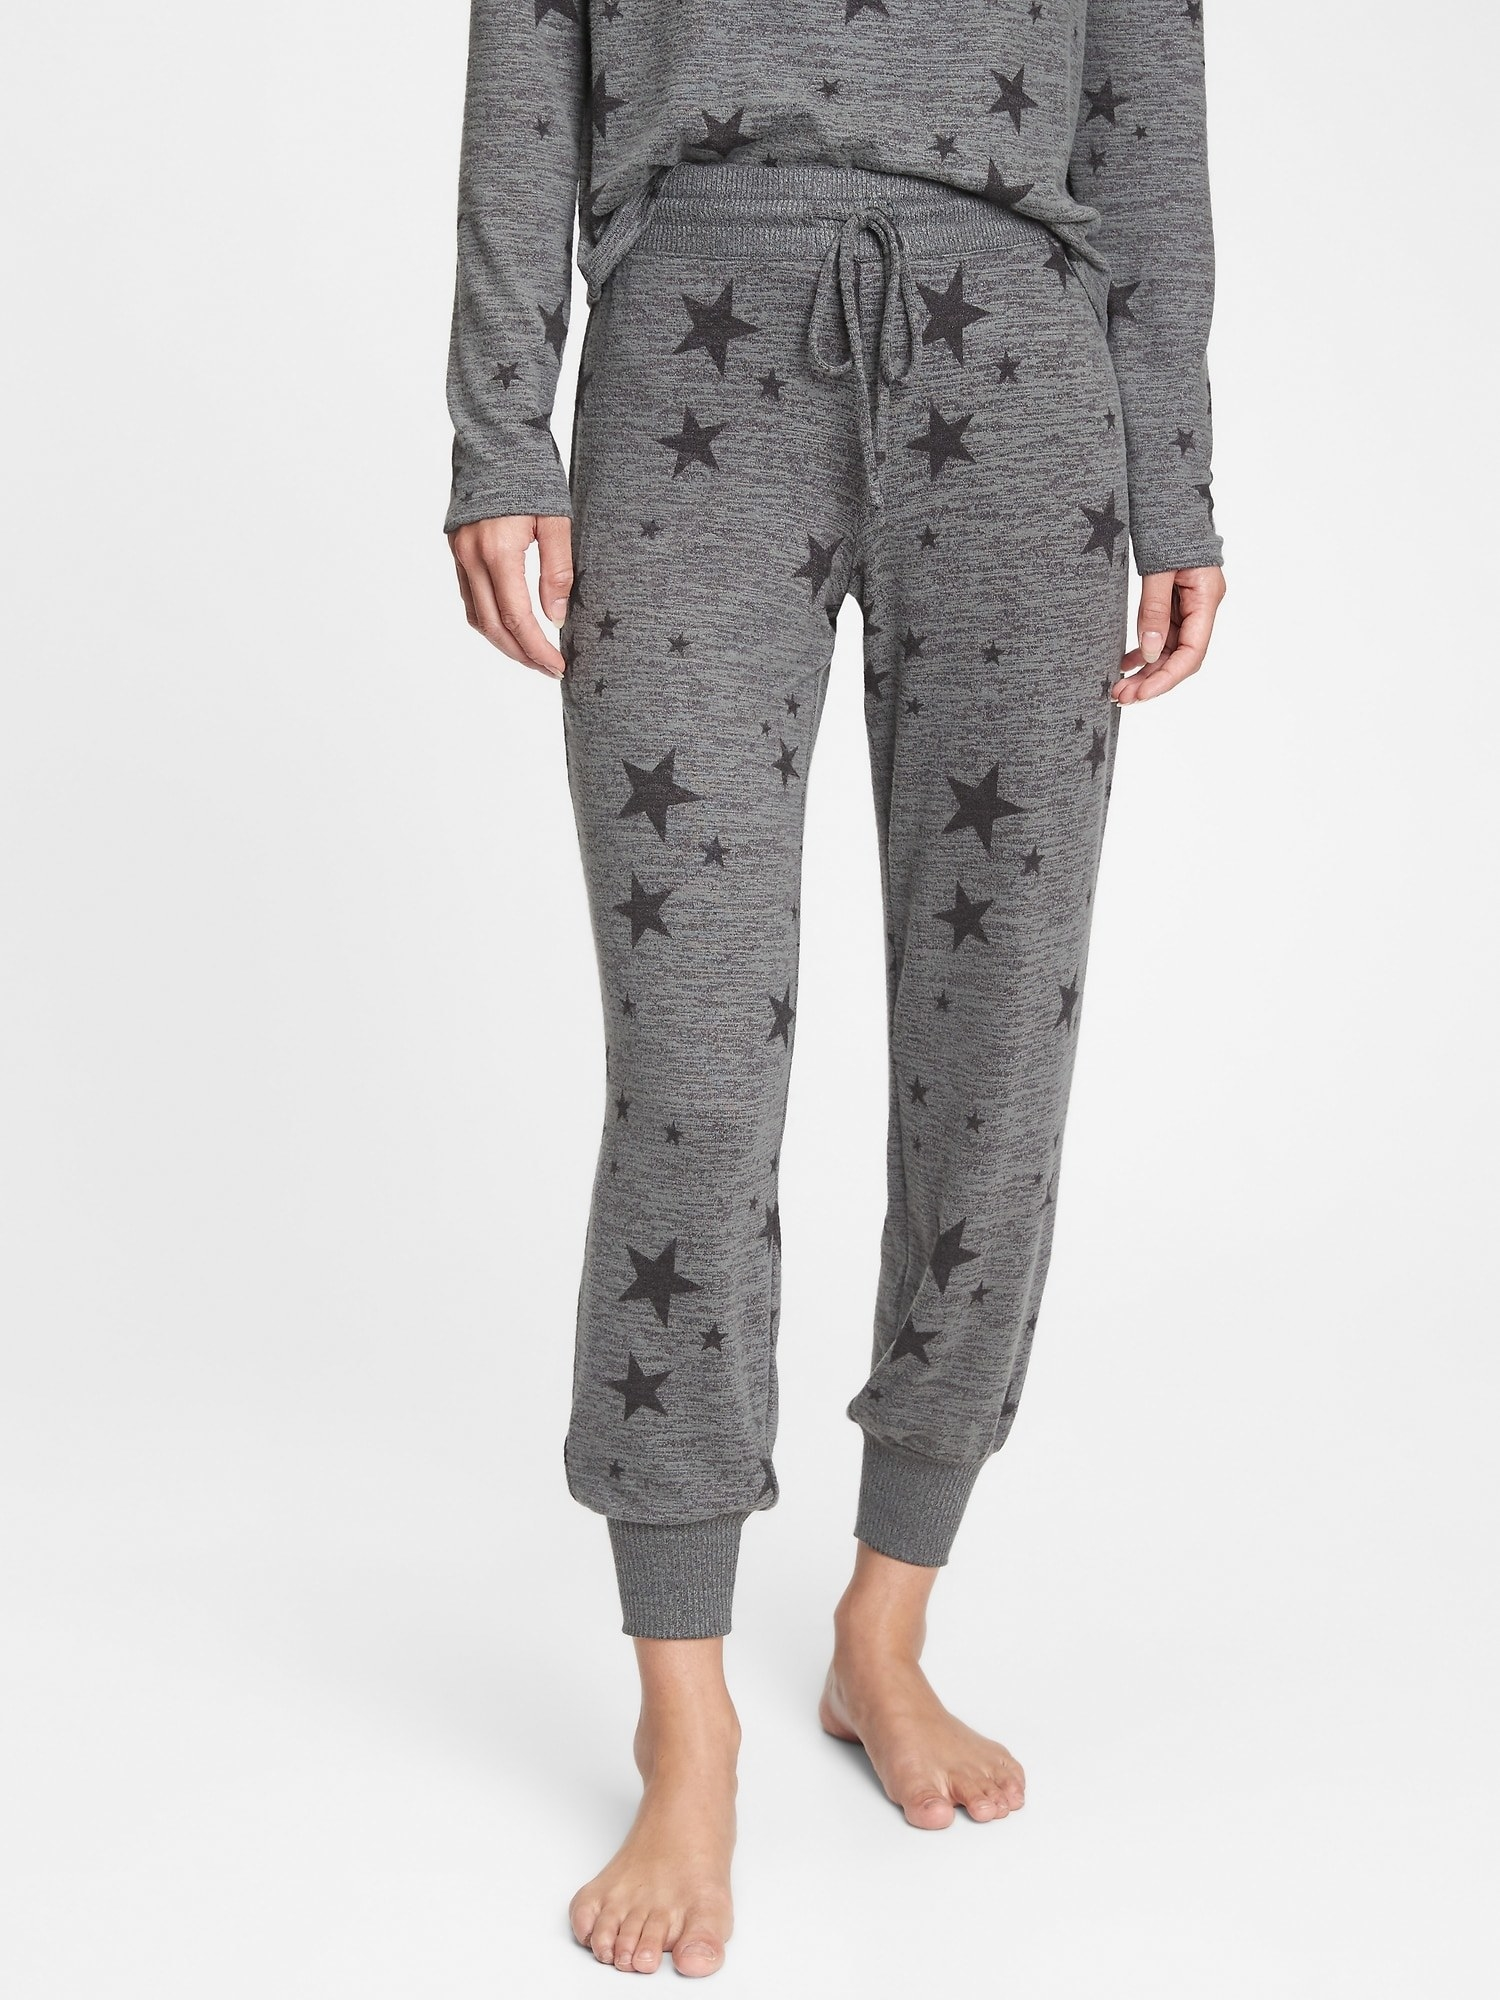 model wearing soft knit joggers in charcoal grey stars